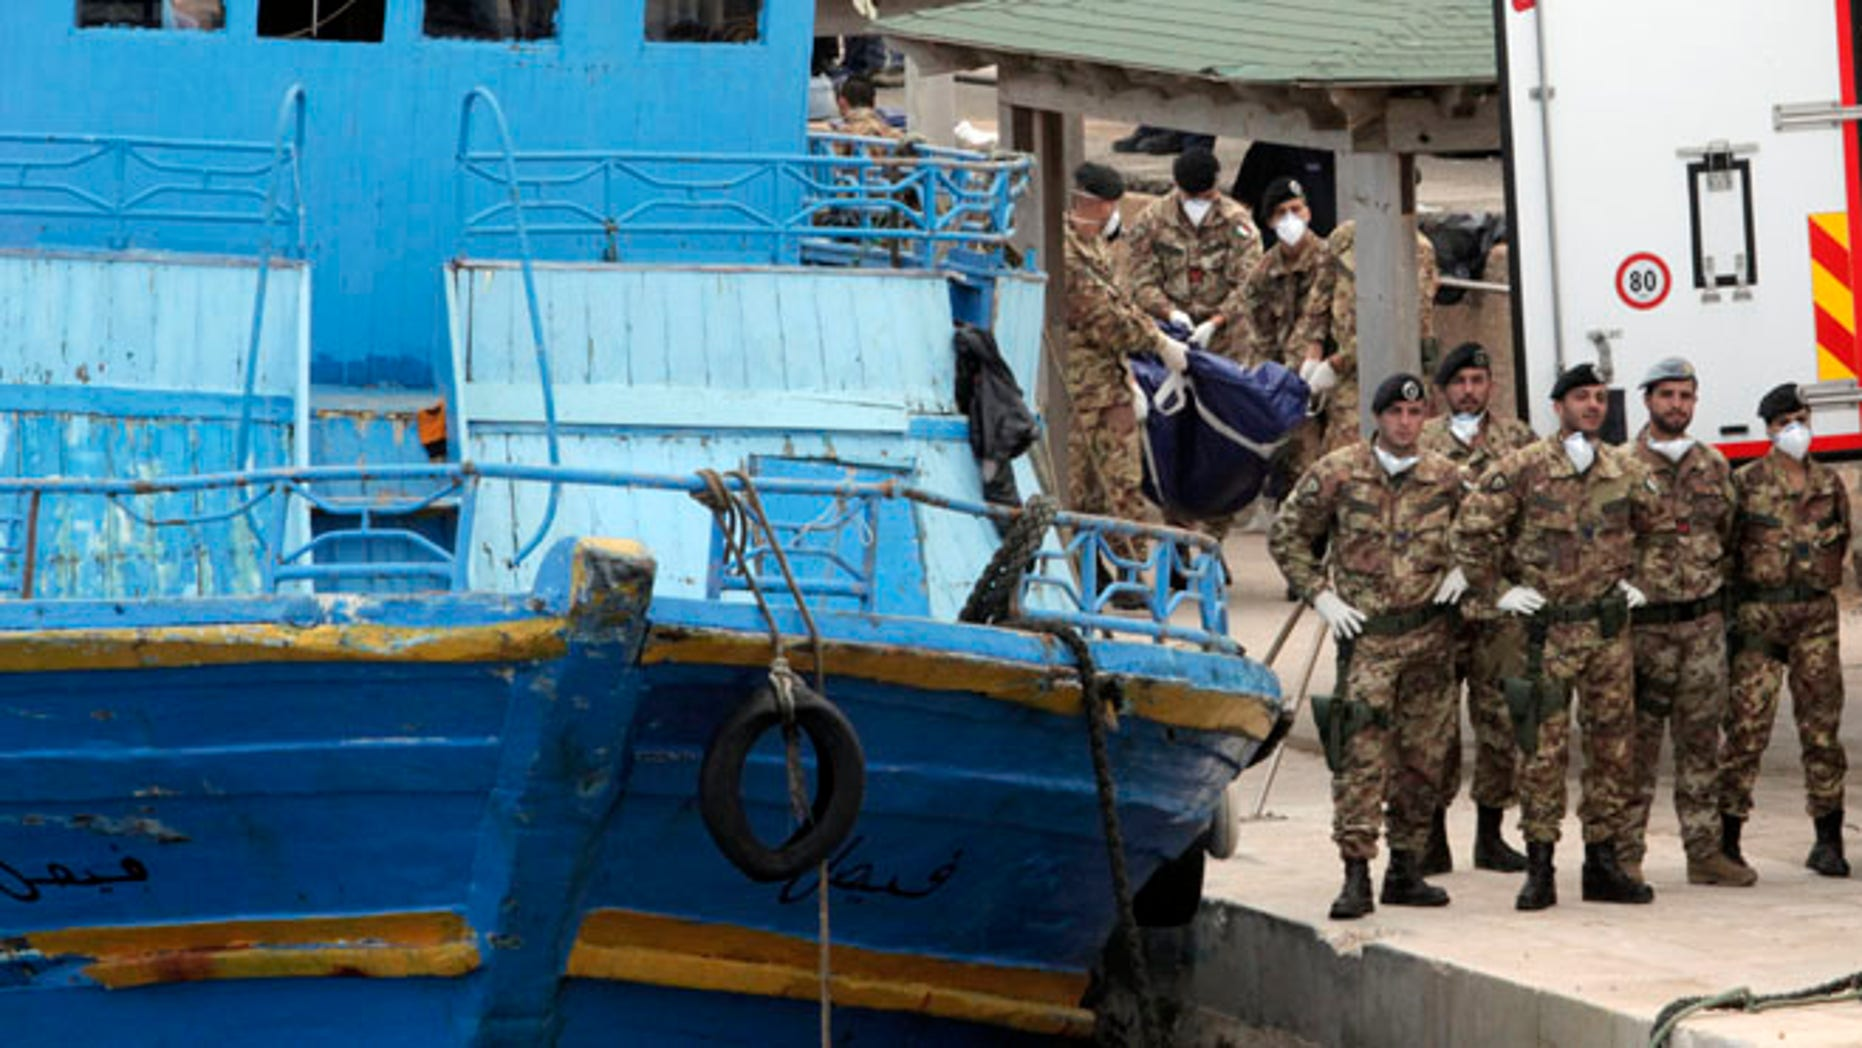 Oct. 6: Italian soldiers carry body bags at the Lampedusa island, Italy.